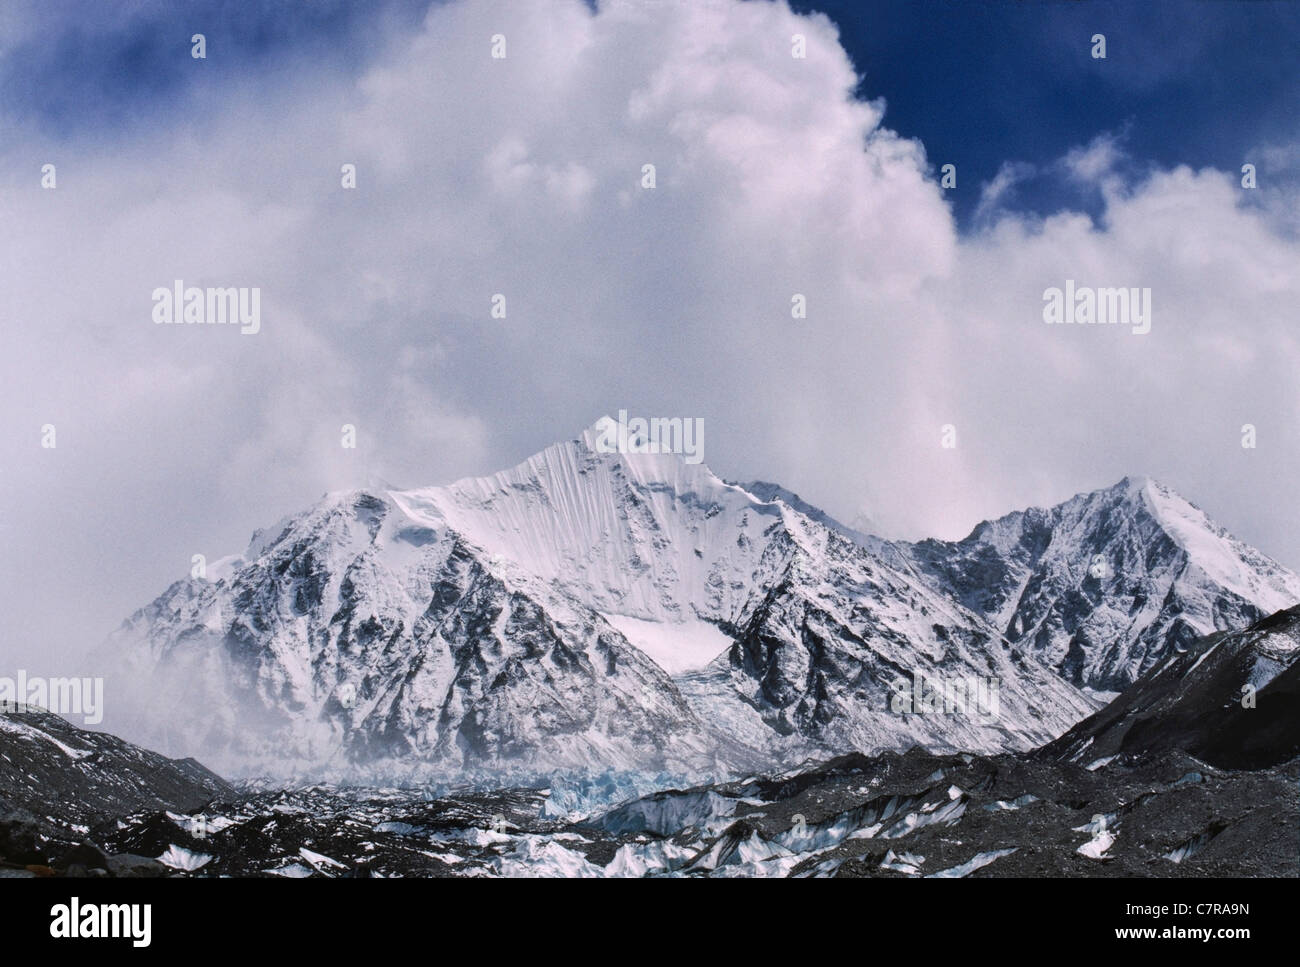 Mountain peak in Rongbuk Glacier enroute to Mt. Everest, Tibet, China - Stock Image